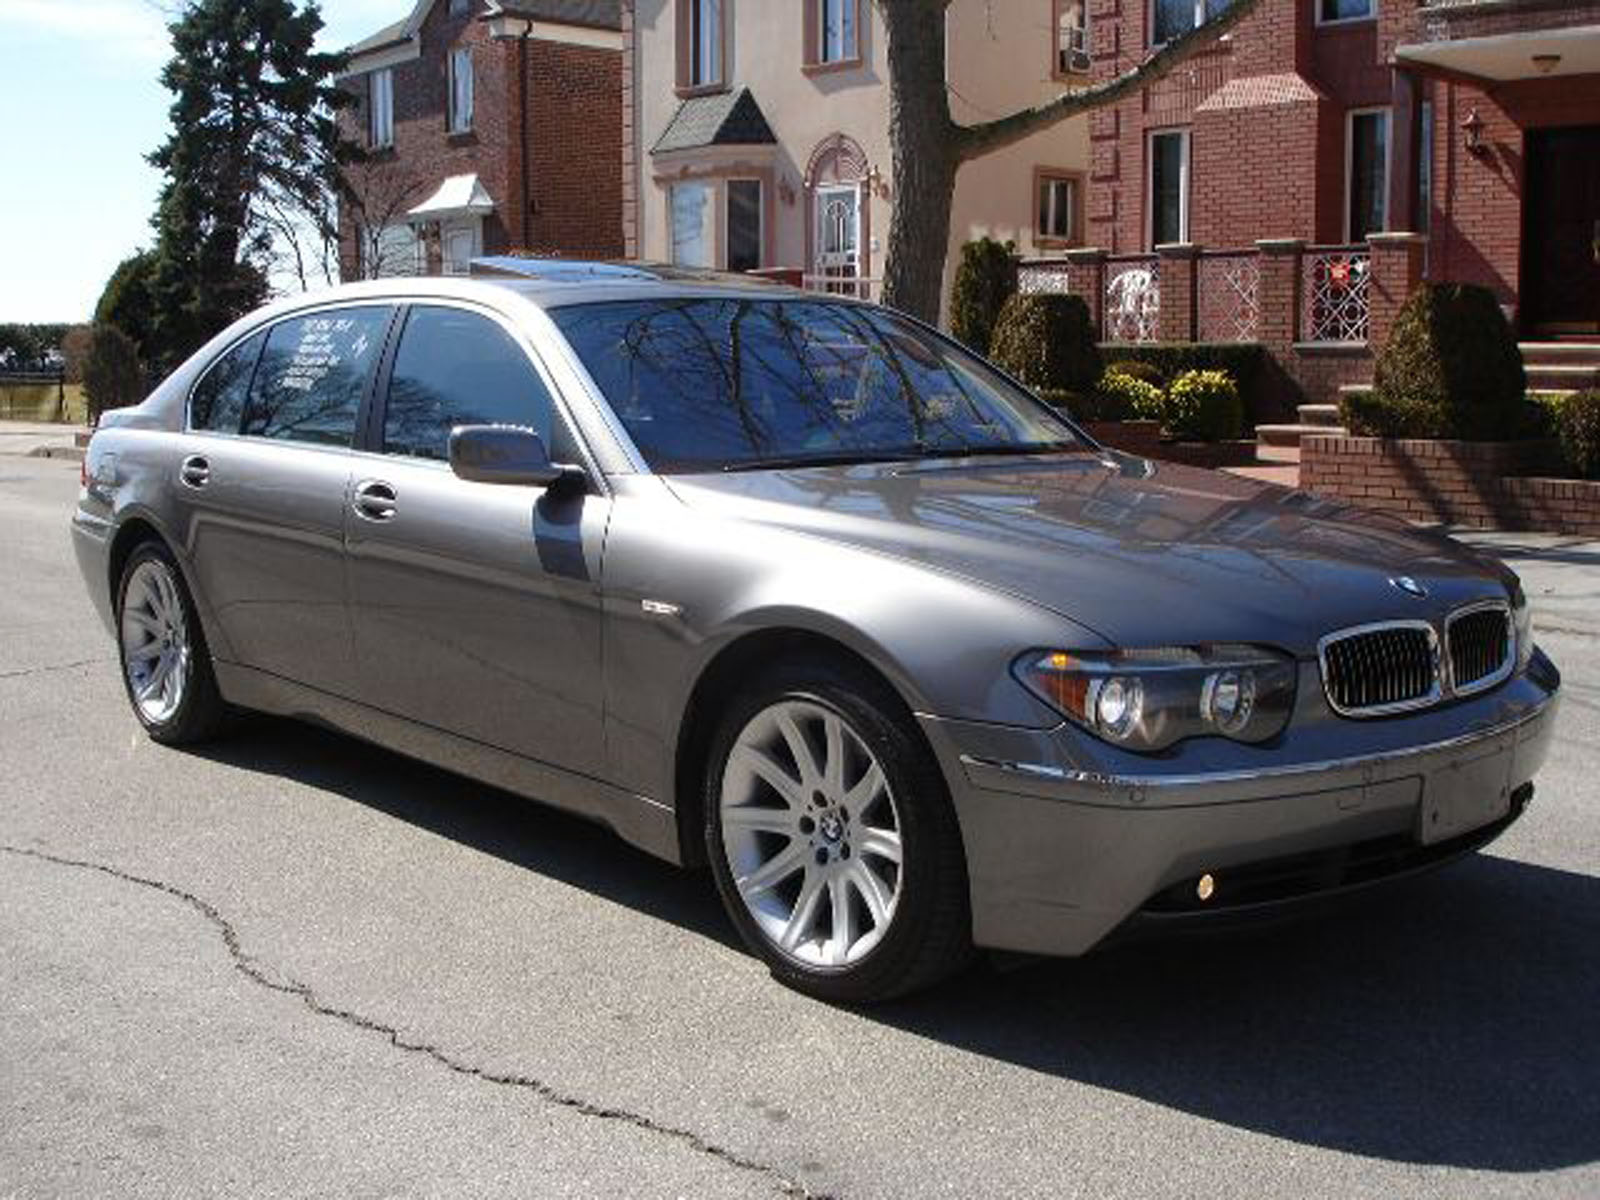 BMW For Sale Lemoore Nas California - 2009 bmw 745